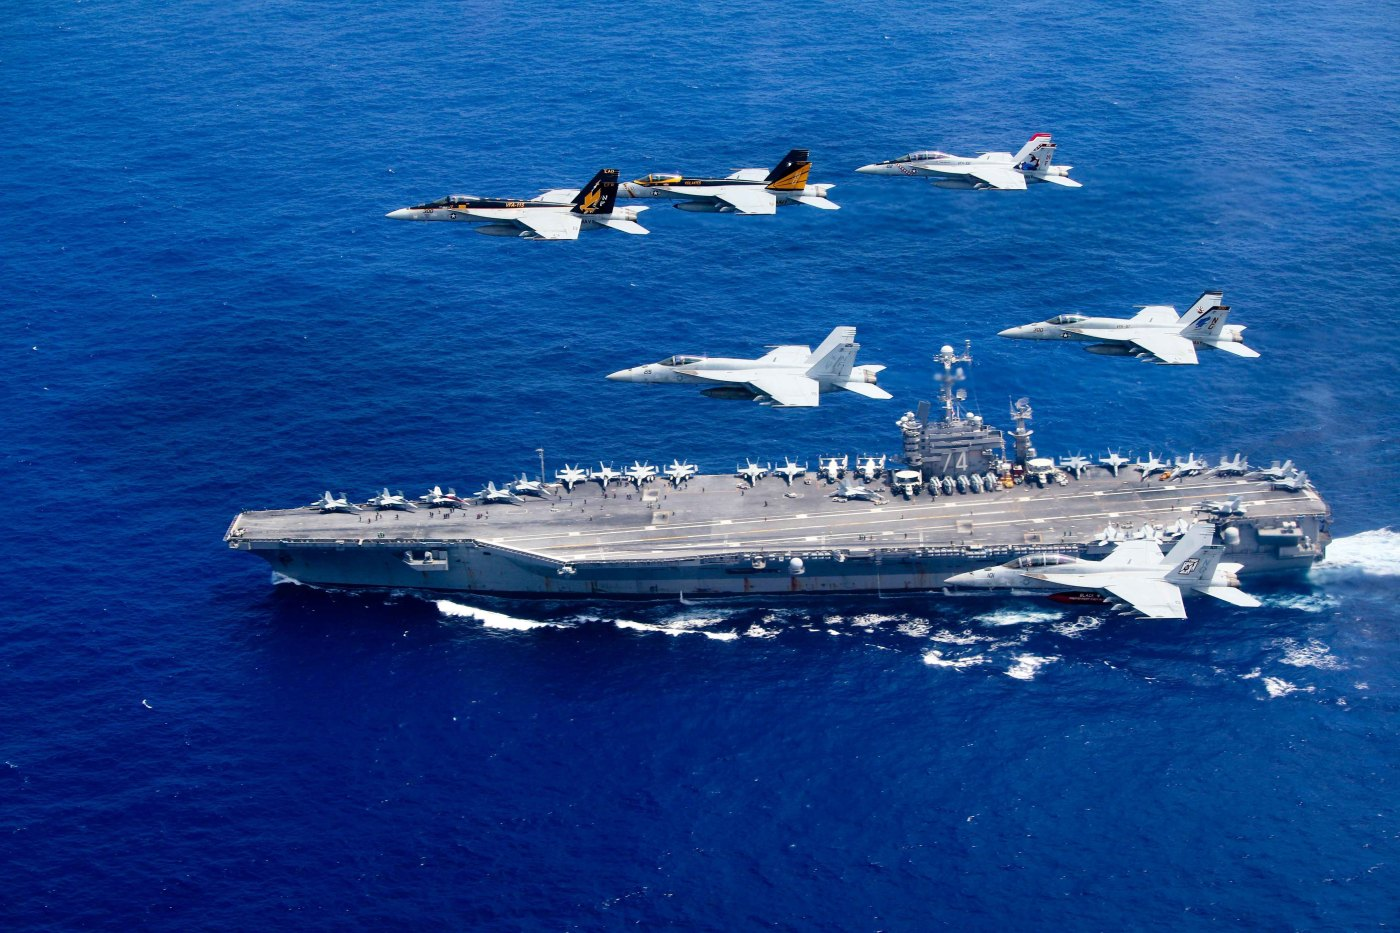 """A combined formation of aircraft from Carrier Air Wing (CVW) 5 and Carrier Air Wing (CVW) 9 pass in formation above the Nimitz-class aircraft carrier USS John C. Stennis (CVN 74) in the Philippine Sea, July 17, 2016.  The formation included F/A-18 Hornets from the """"Black Aces"""" of Strike Fighter Squadron (VFA) 41, the """"Diamondbacks"""" of Strike Fighter Squadron (VFA) 102, the """"Eagles"""" of Strike Fighter Squadron (VFA) 115, the """"Royal Maces"""" of Strike Fighter Squadron (VFA) 27, the """"Vigilantes"""" of Strike Fighter Squadron (VFA) 151, and the """"Warhawks"""" of Strike Fighter Squadron (VFA) 97. The Nimitz-class aircraft carriers USS John C. Stennis and USS Ronald Reagan (CVN 76) conduct dual aircraft carrier strike group operations in the U.S. 7th Fleet area of operations in support of security and stability in the Indo-Asia-Pacific. The operations mark the U.S. Navy's continued presence throughout the area of responsibility. (U.S. Navy photo by Lt. Steve Smith / Released)"""